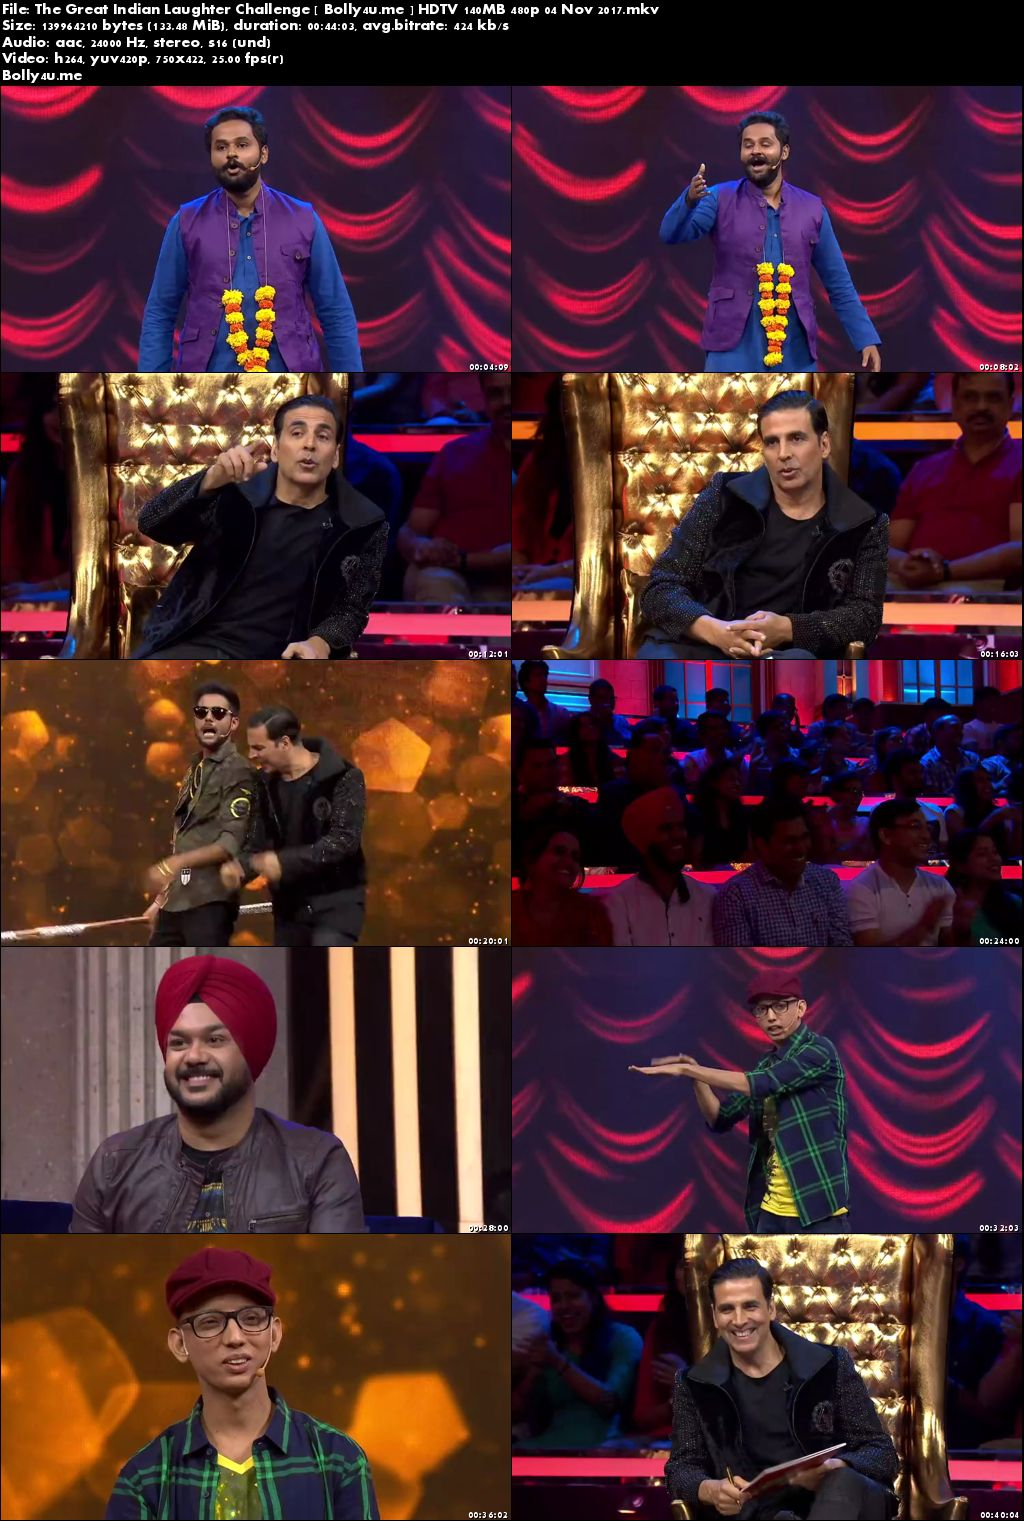 The Great Indian Laughter Challenge HDTV 140MB 480p 04 Nov 2017 Download